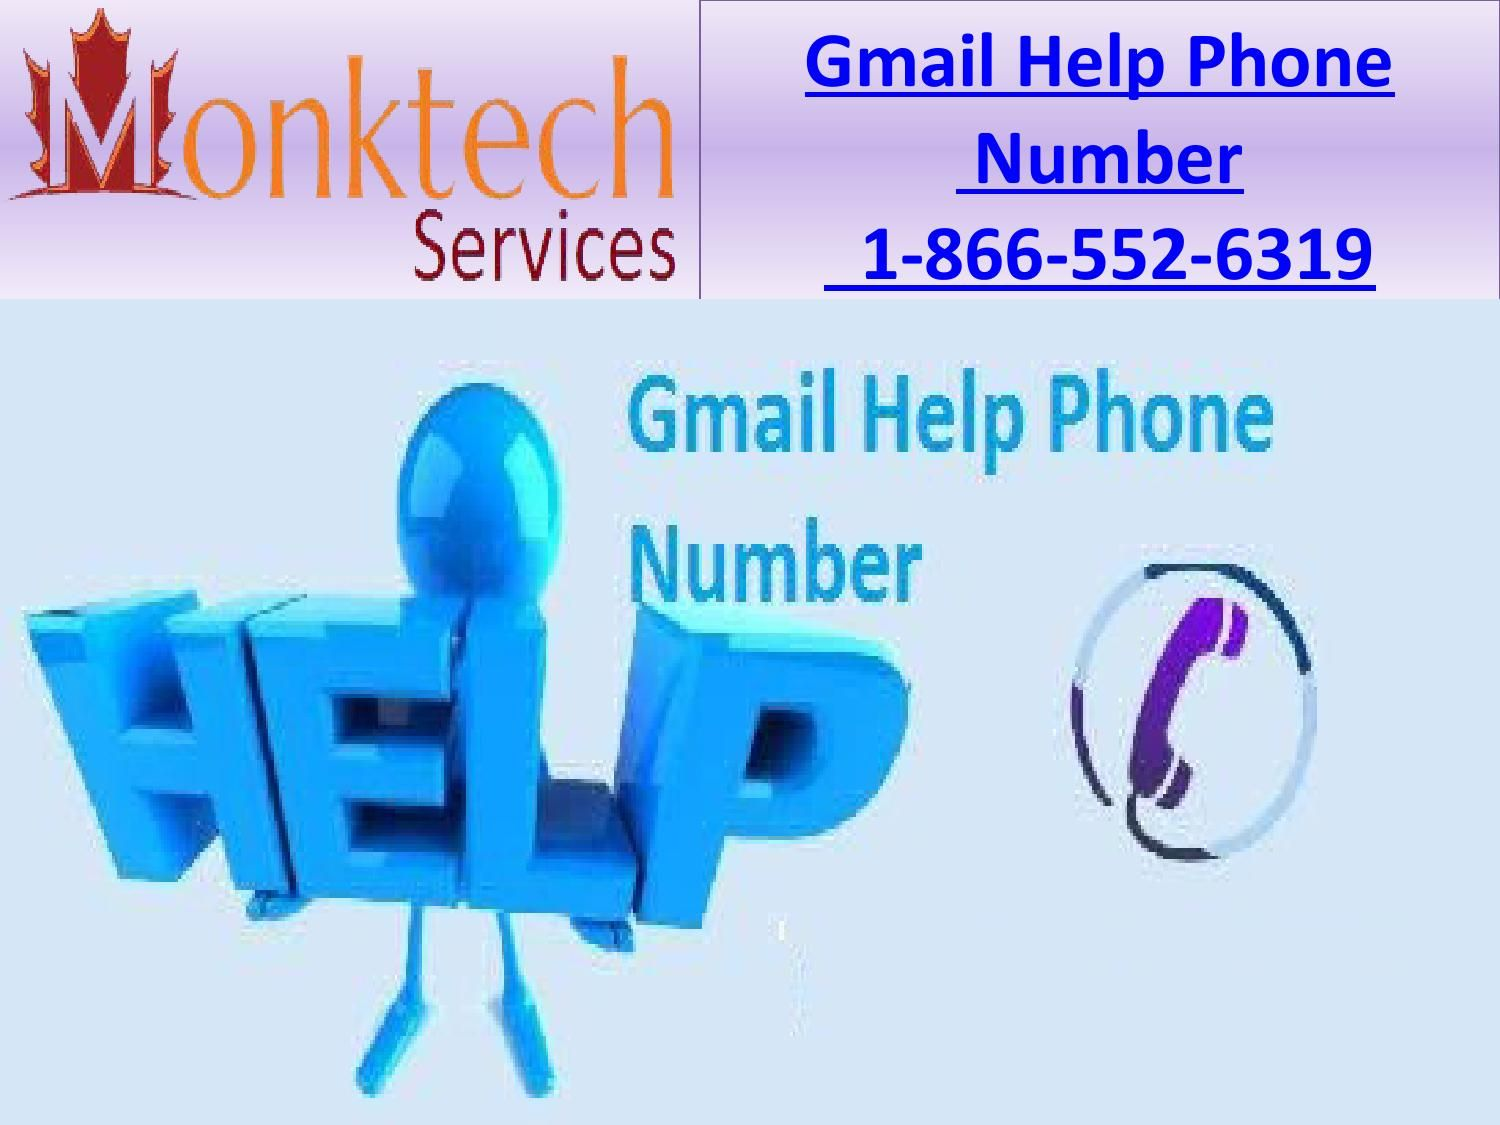 Quick dial for gmail help phone number 1 866 552 6319